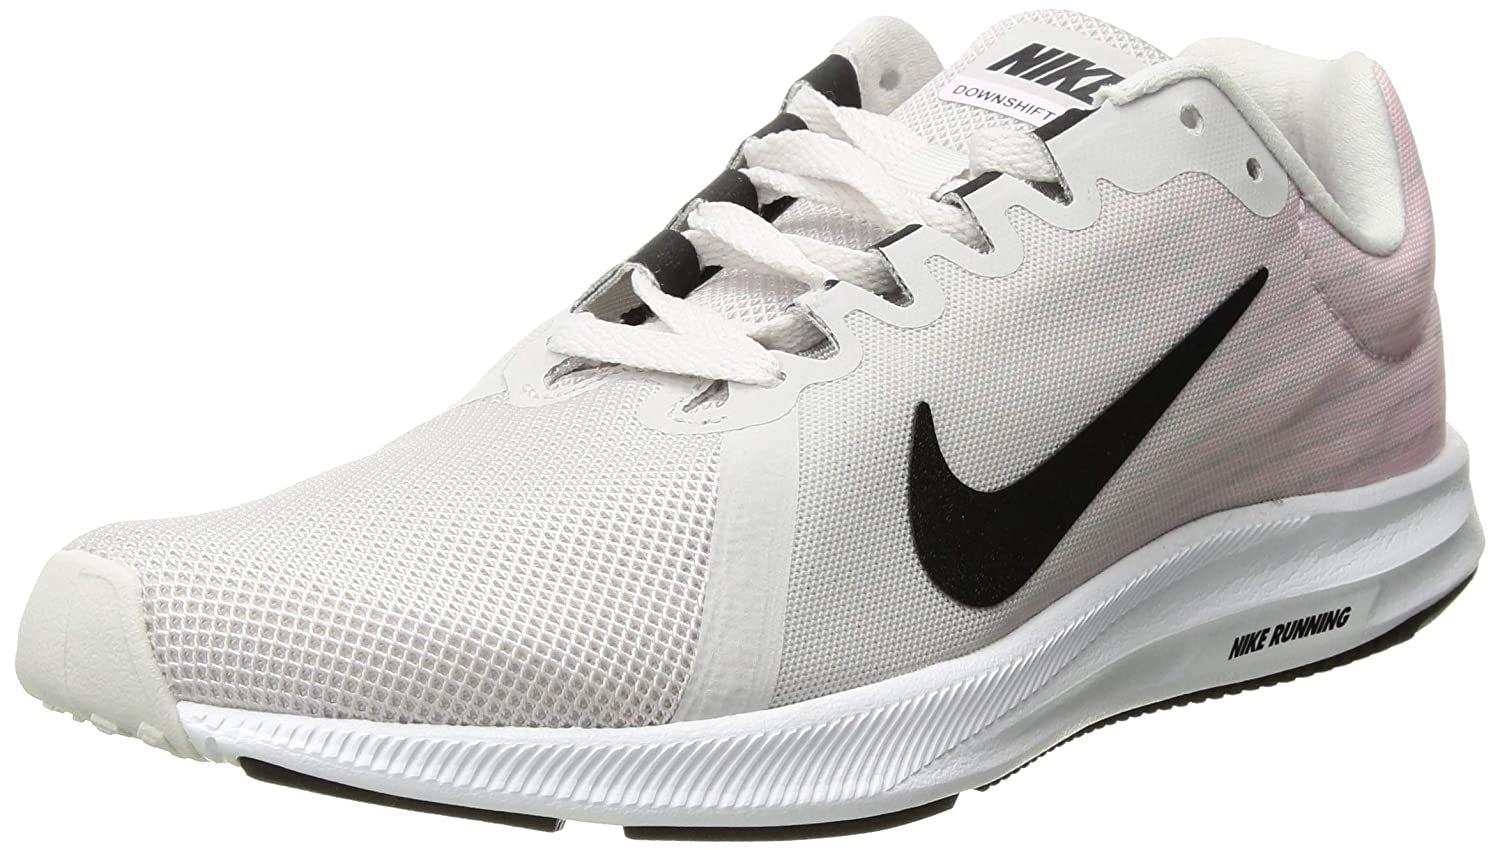 online store e900a 6ad9c Nike WMNS Downshifter 8, Chaussures de Fitness Femme